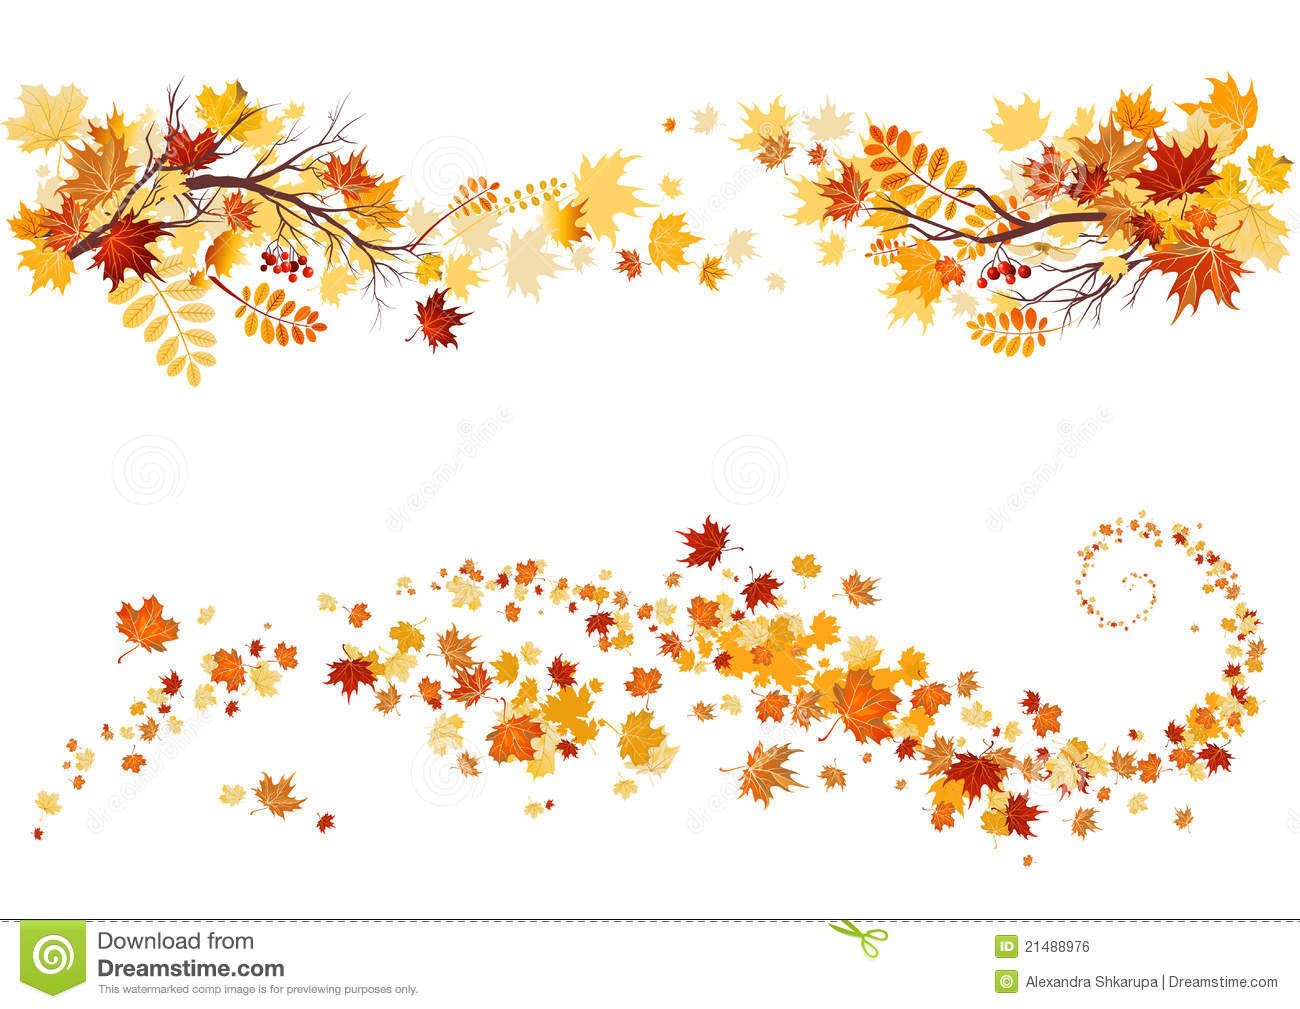 Autumn Leaves Border - Download From Over 64 Million High Quality Stock  Photos, Images,